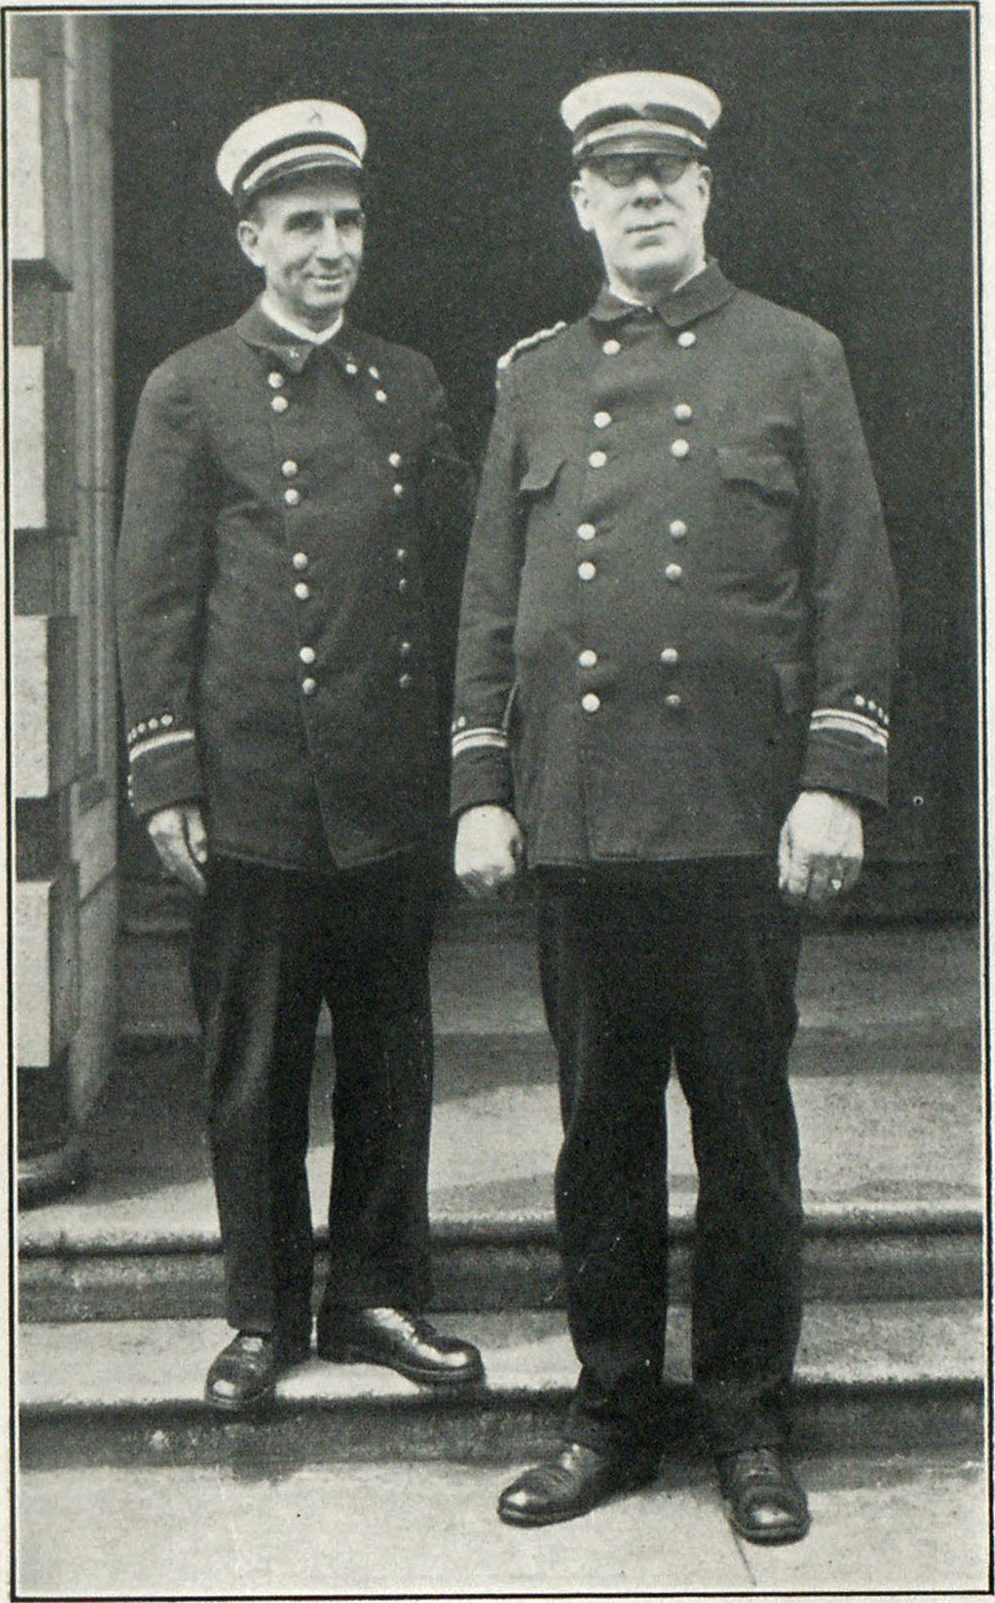 Battalion Chief Fred. W. Roberts and Fire Alarm Superintendent C. A. Savariau, Committee on Arrangements for the Famous Mt. Hood Loop Trip, and Columbia River Highway Trip